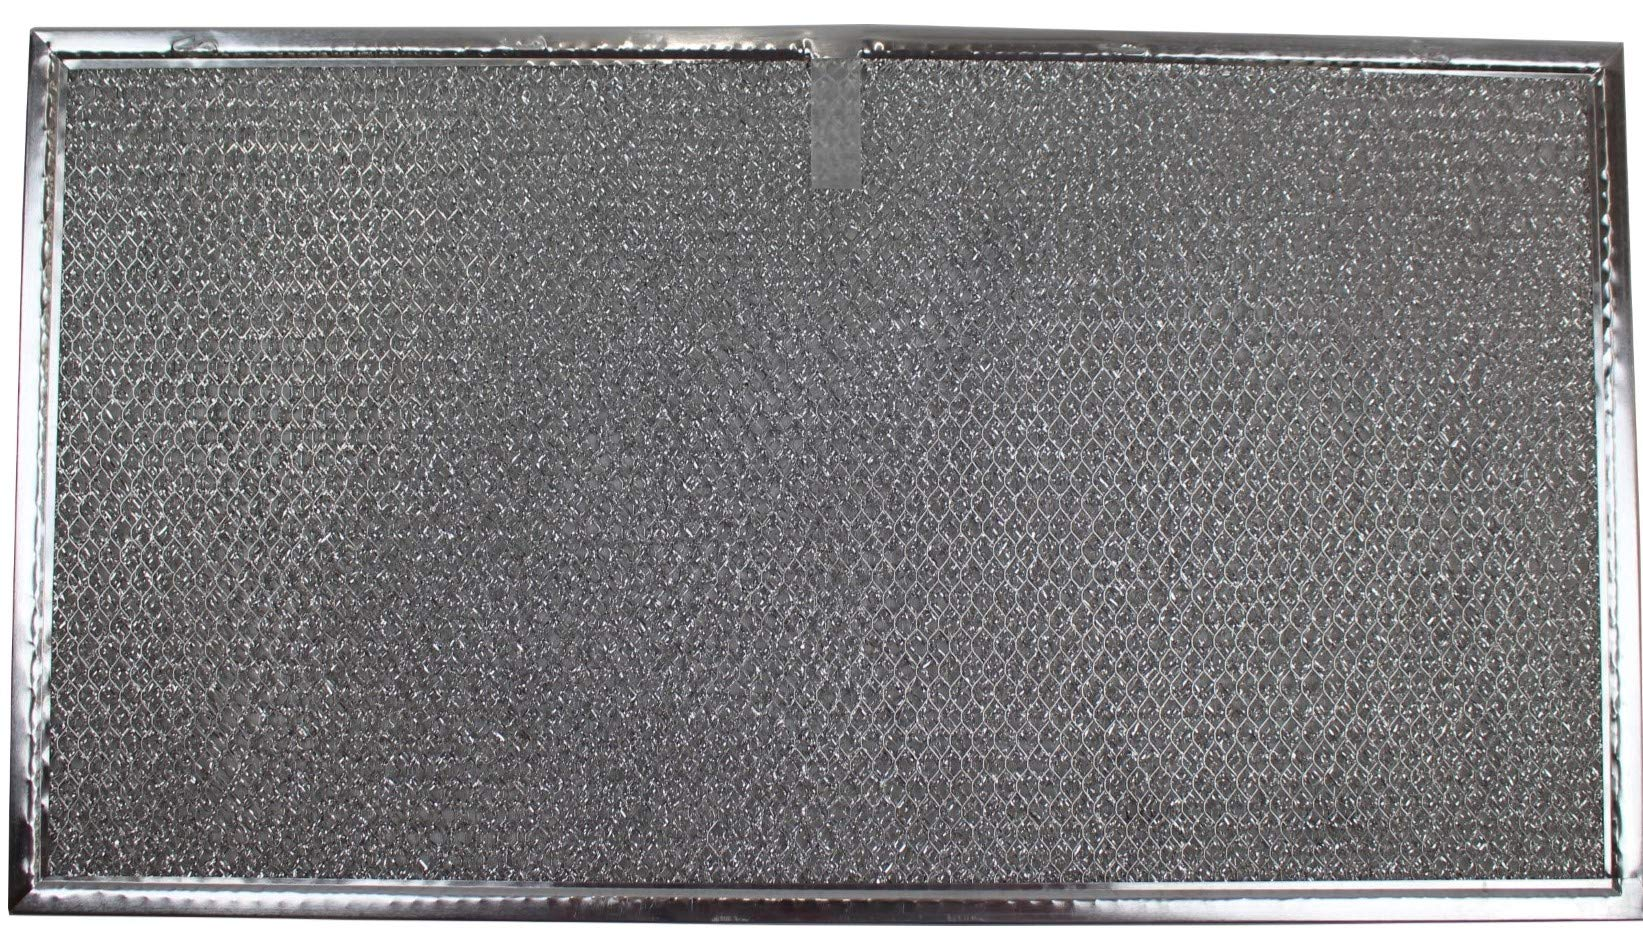 Replacement Aluminum Range Filter Compatible With Dacor 82716,G 8660,RHF0509   5 x 15 1/4 x 3/32 (PT